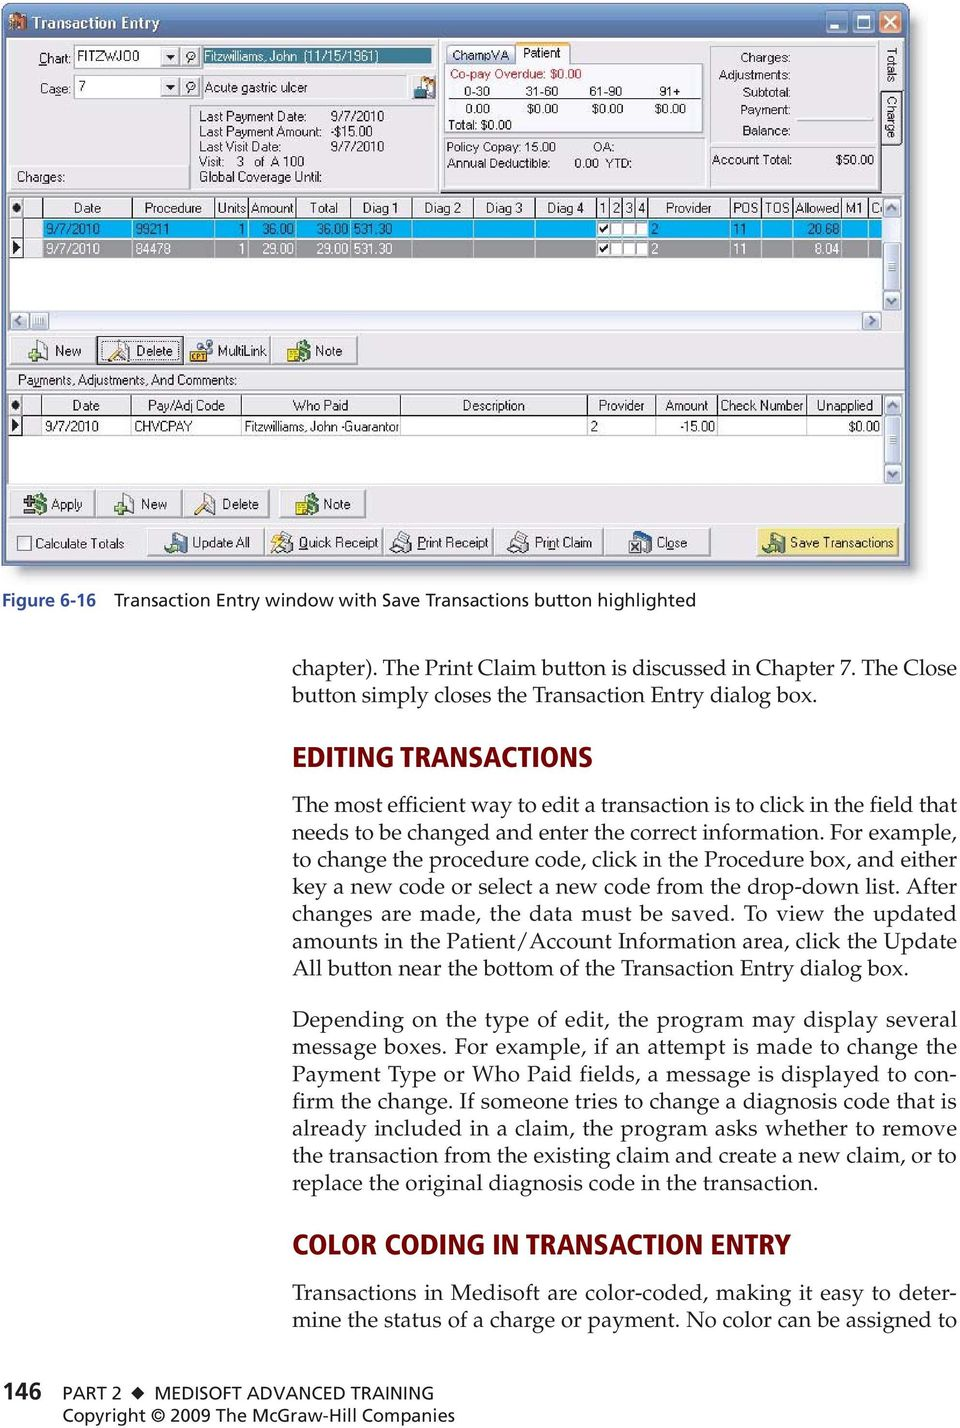 EDITING TRANSACTIONS The most efficient way to edit a transaction is to click in the field that needs to be changed and enter the correct information.